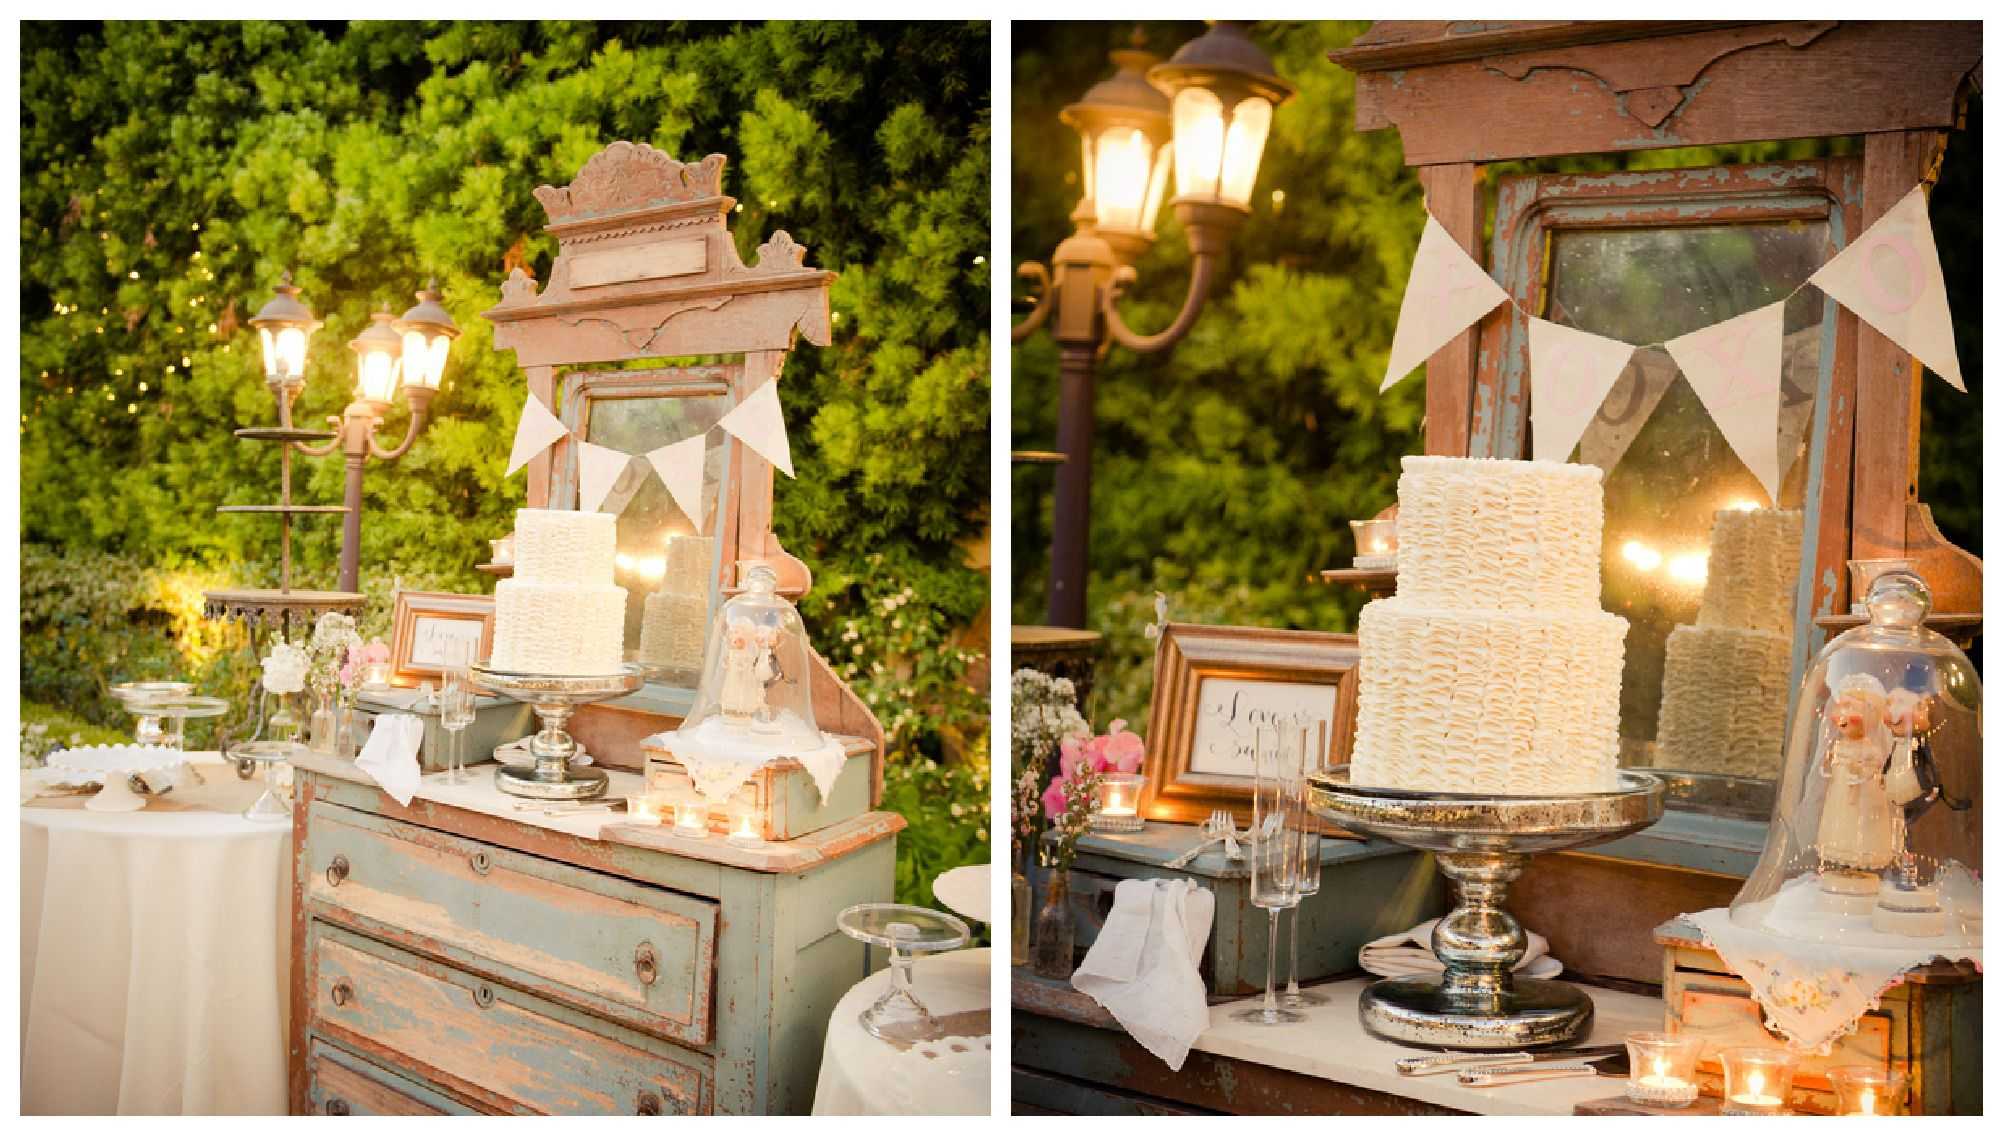 A Country & Vintage Style Wedding - Rustic Wedding Chic